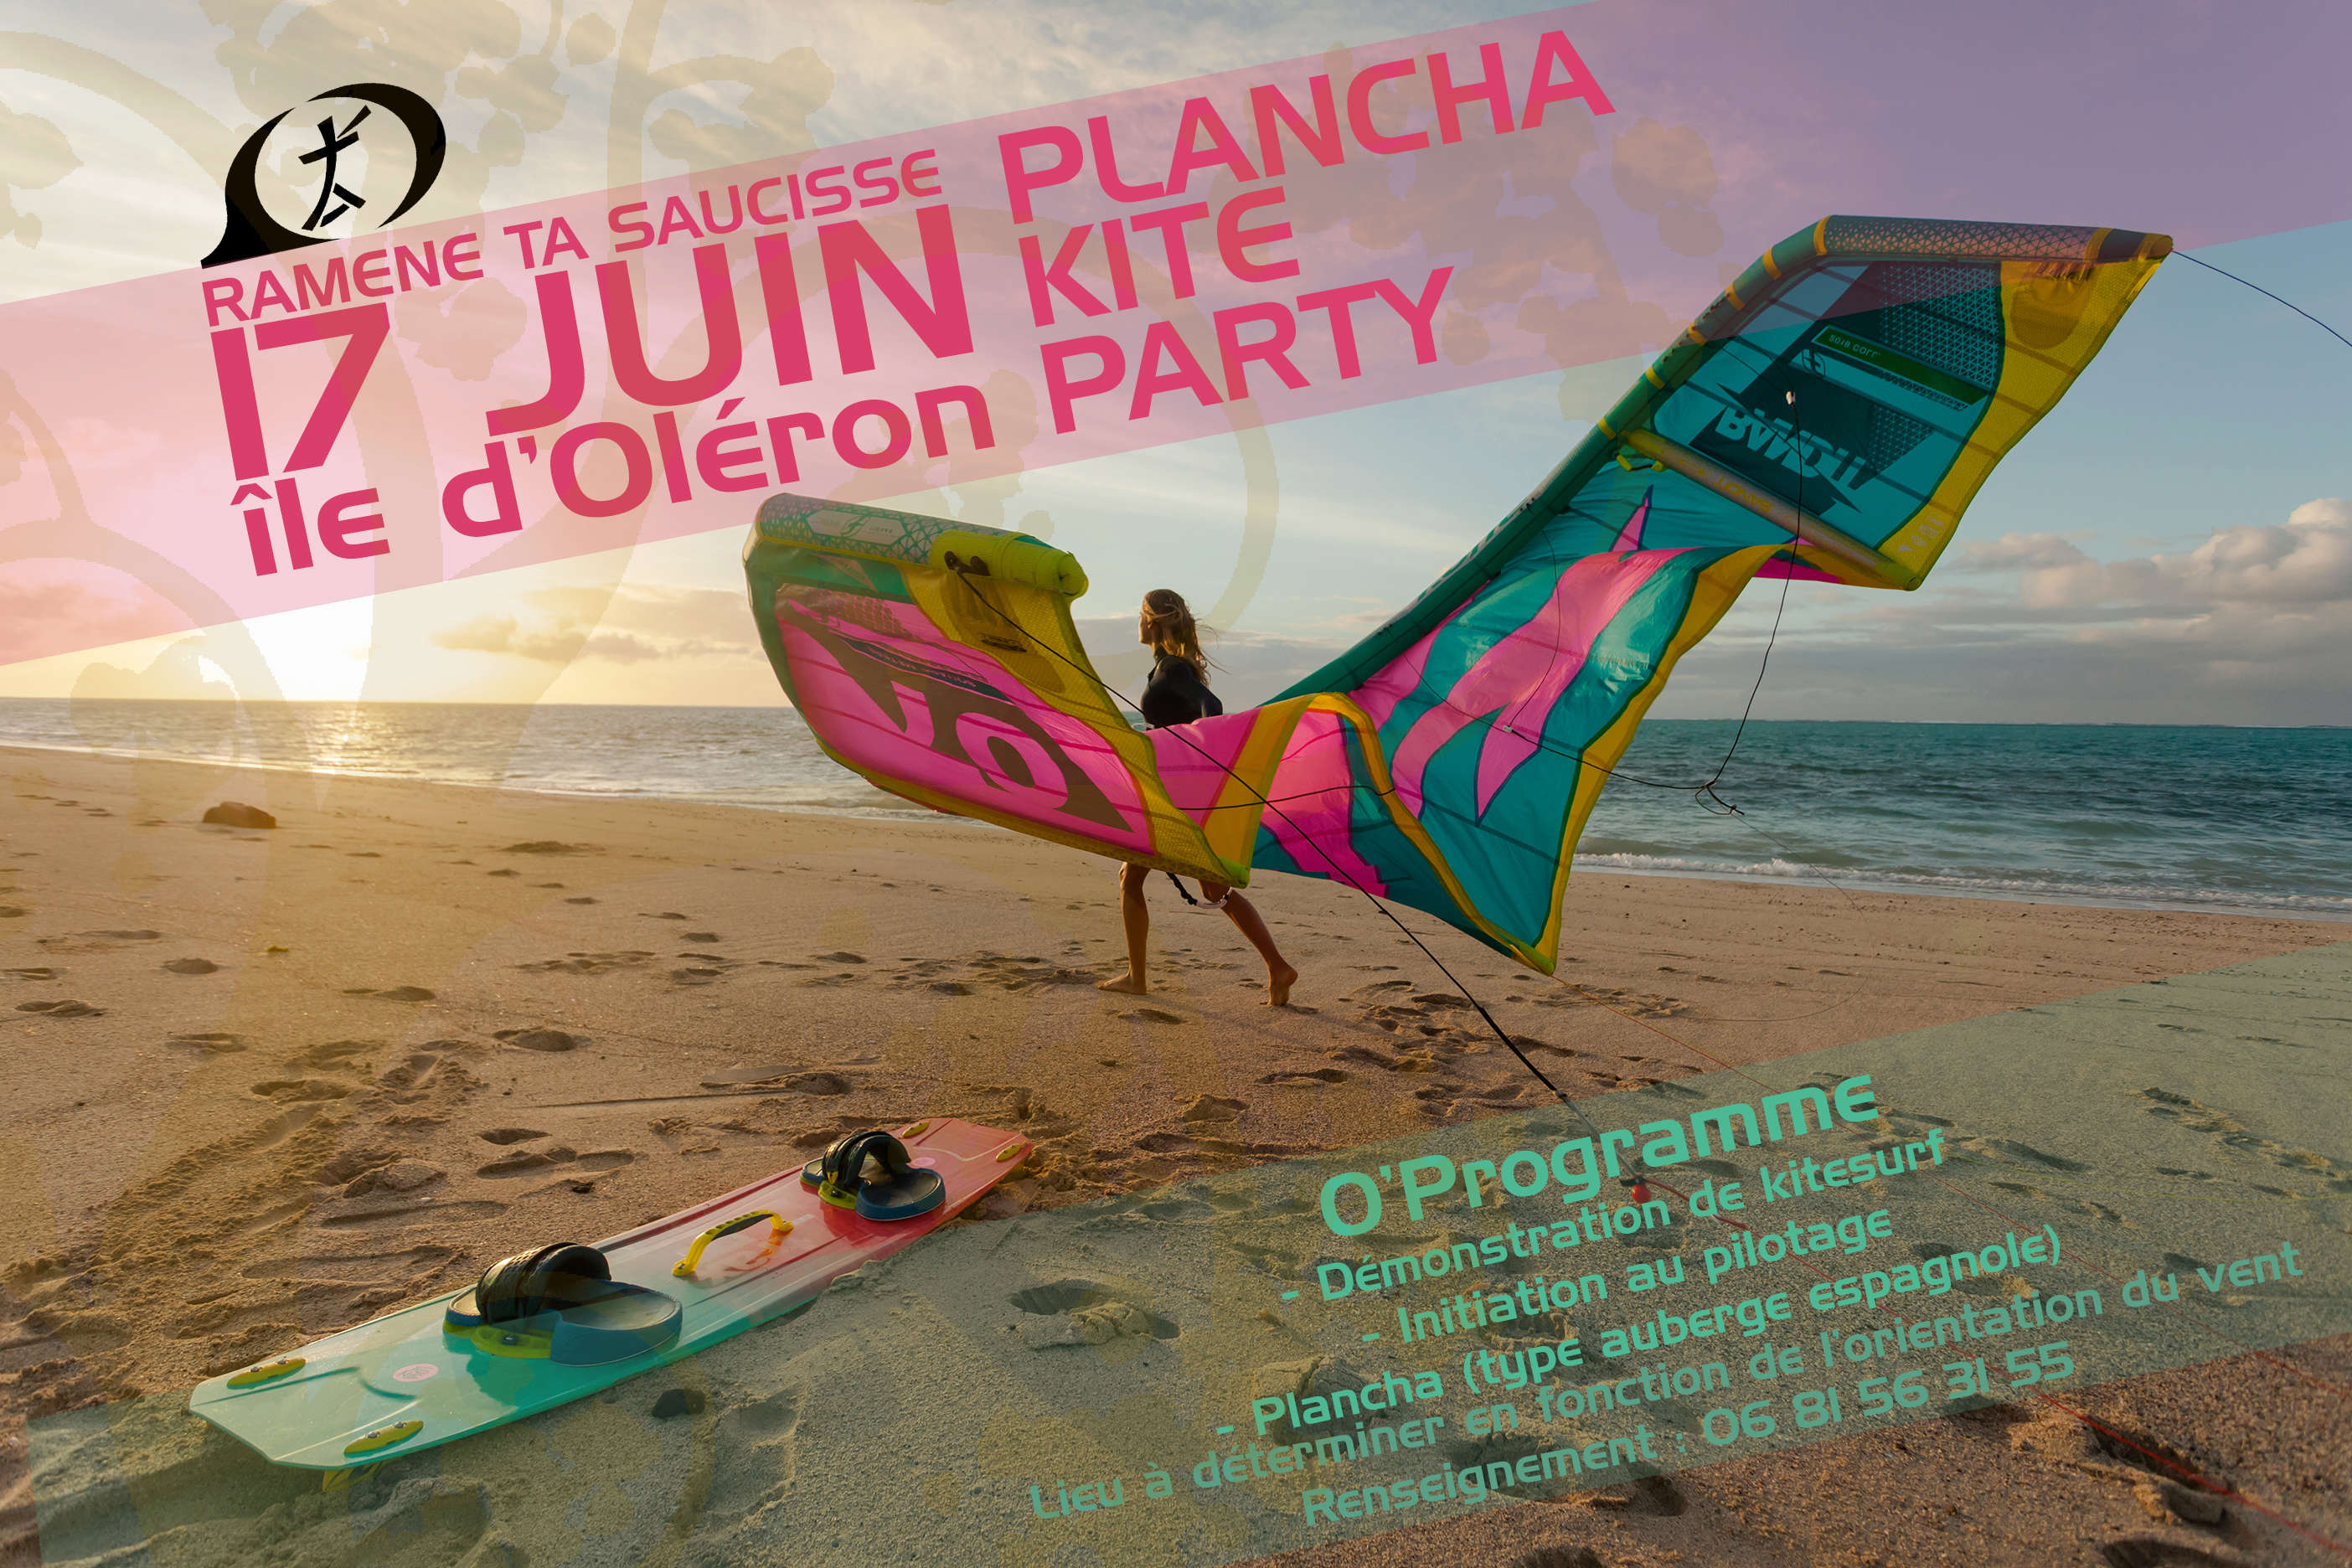 Plancha Kite Party 2018 Affich10